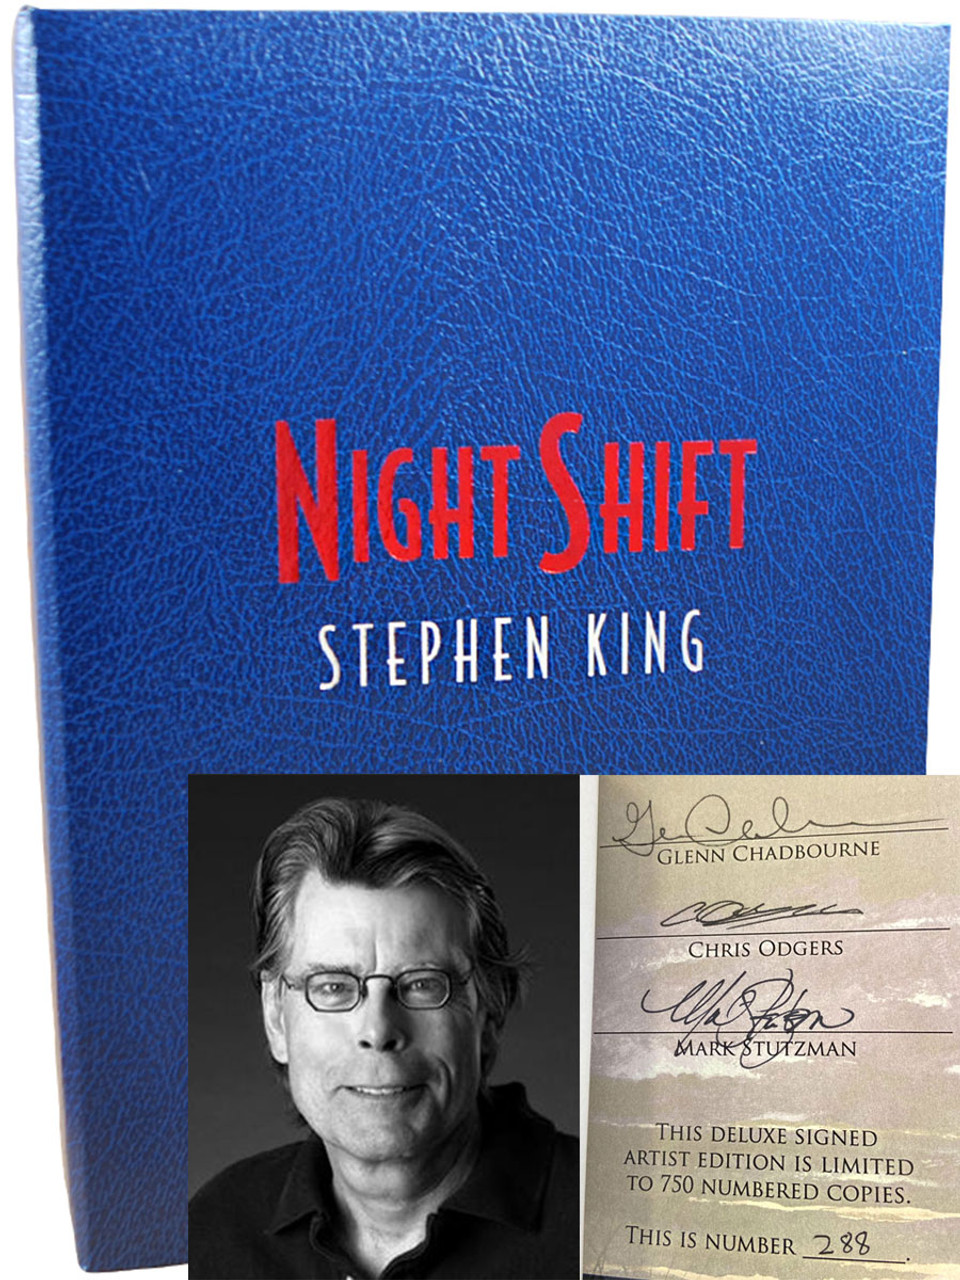 """Stephen King """"Night Shift"""" Deluxe Signed Limited Artist Edition No. 288 of 750, Tray-cased [Very Fine]"""